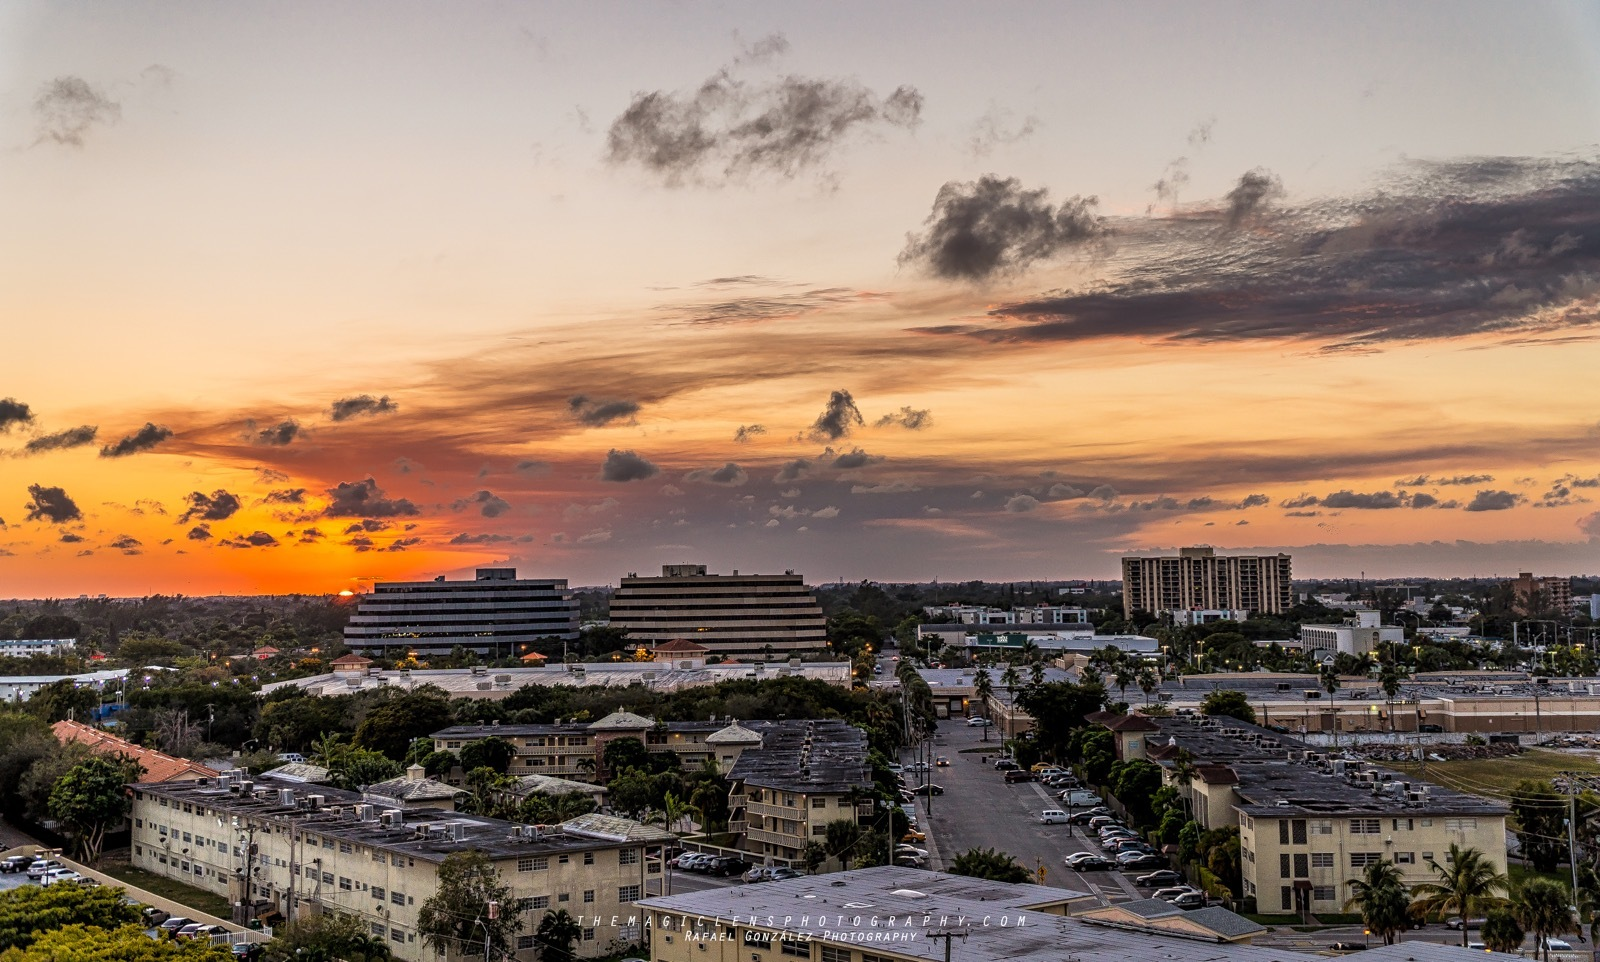 City of North Miami by themagiclensphotography